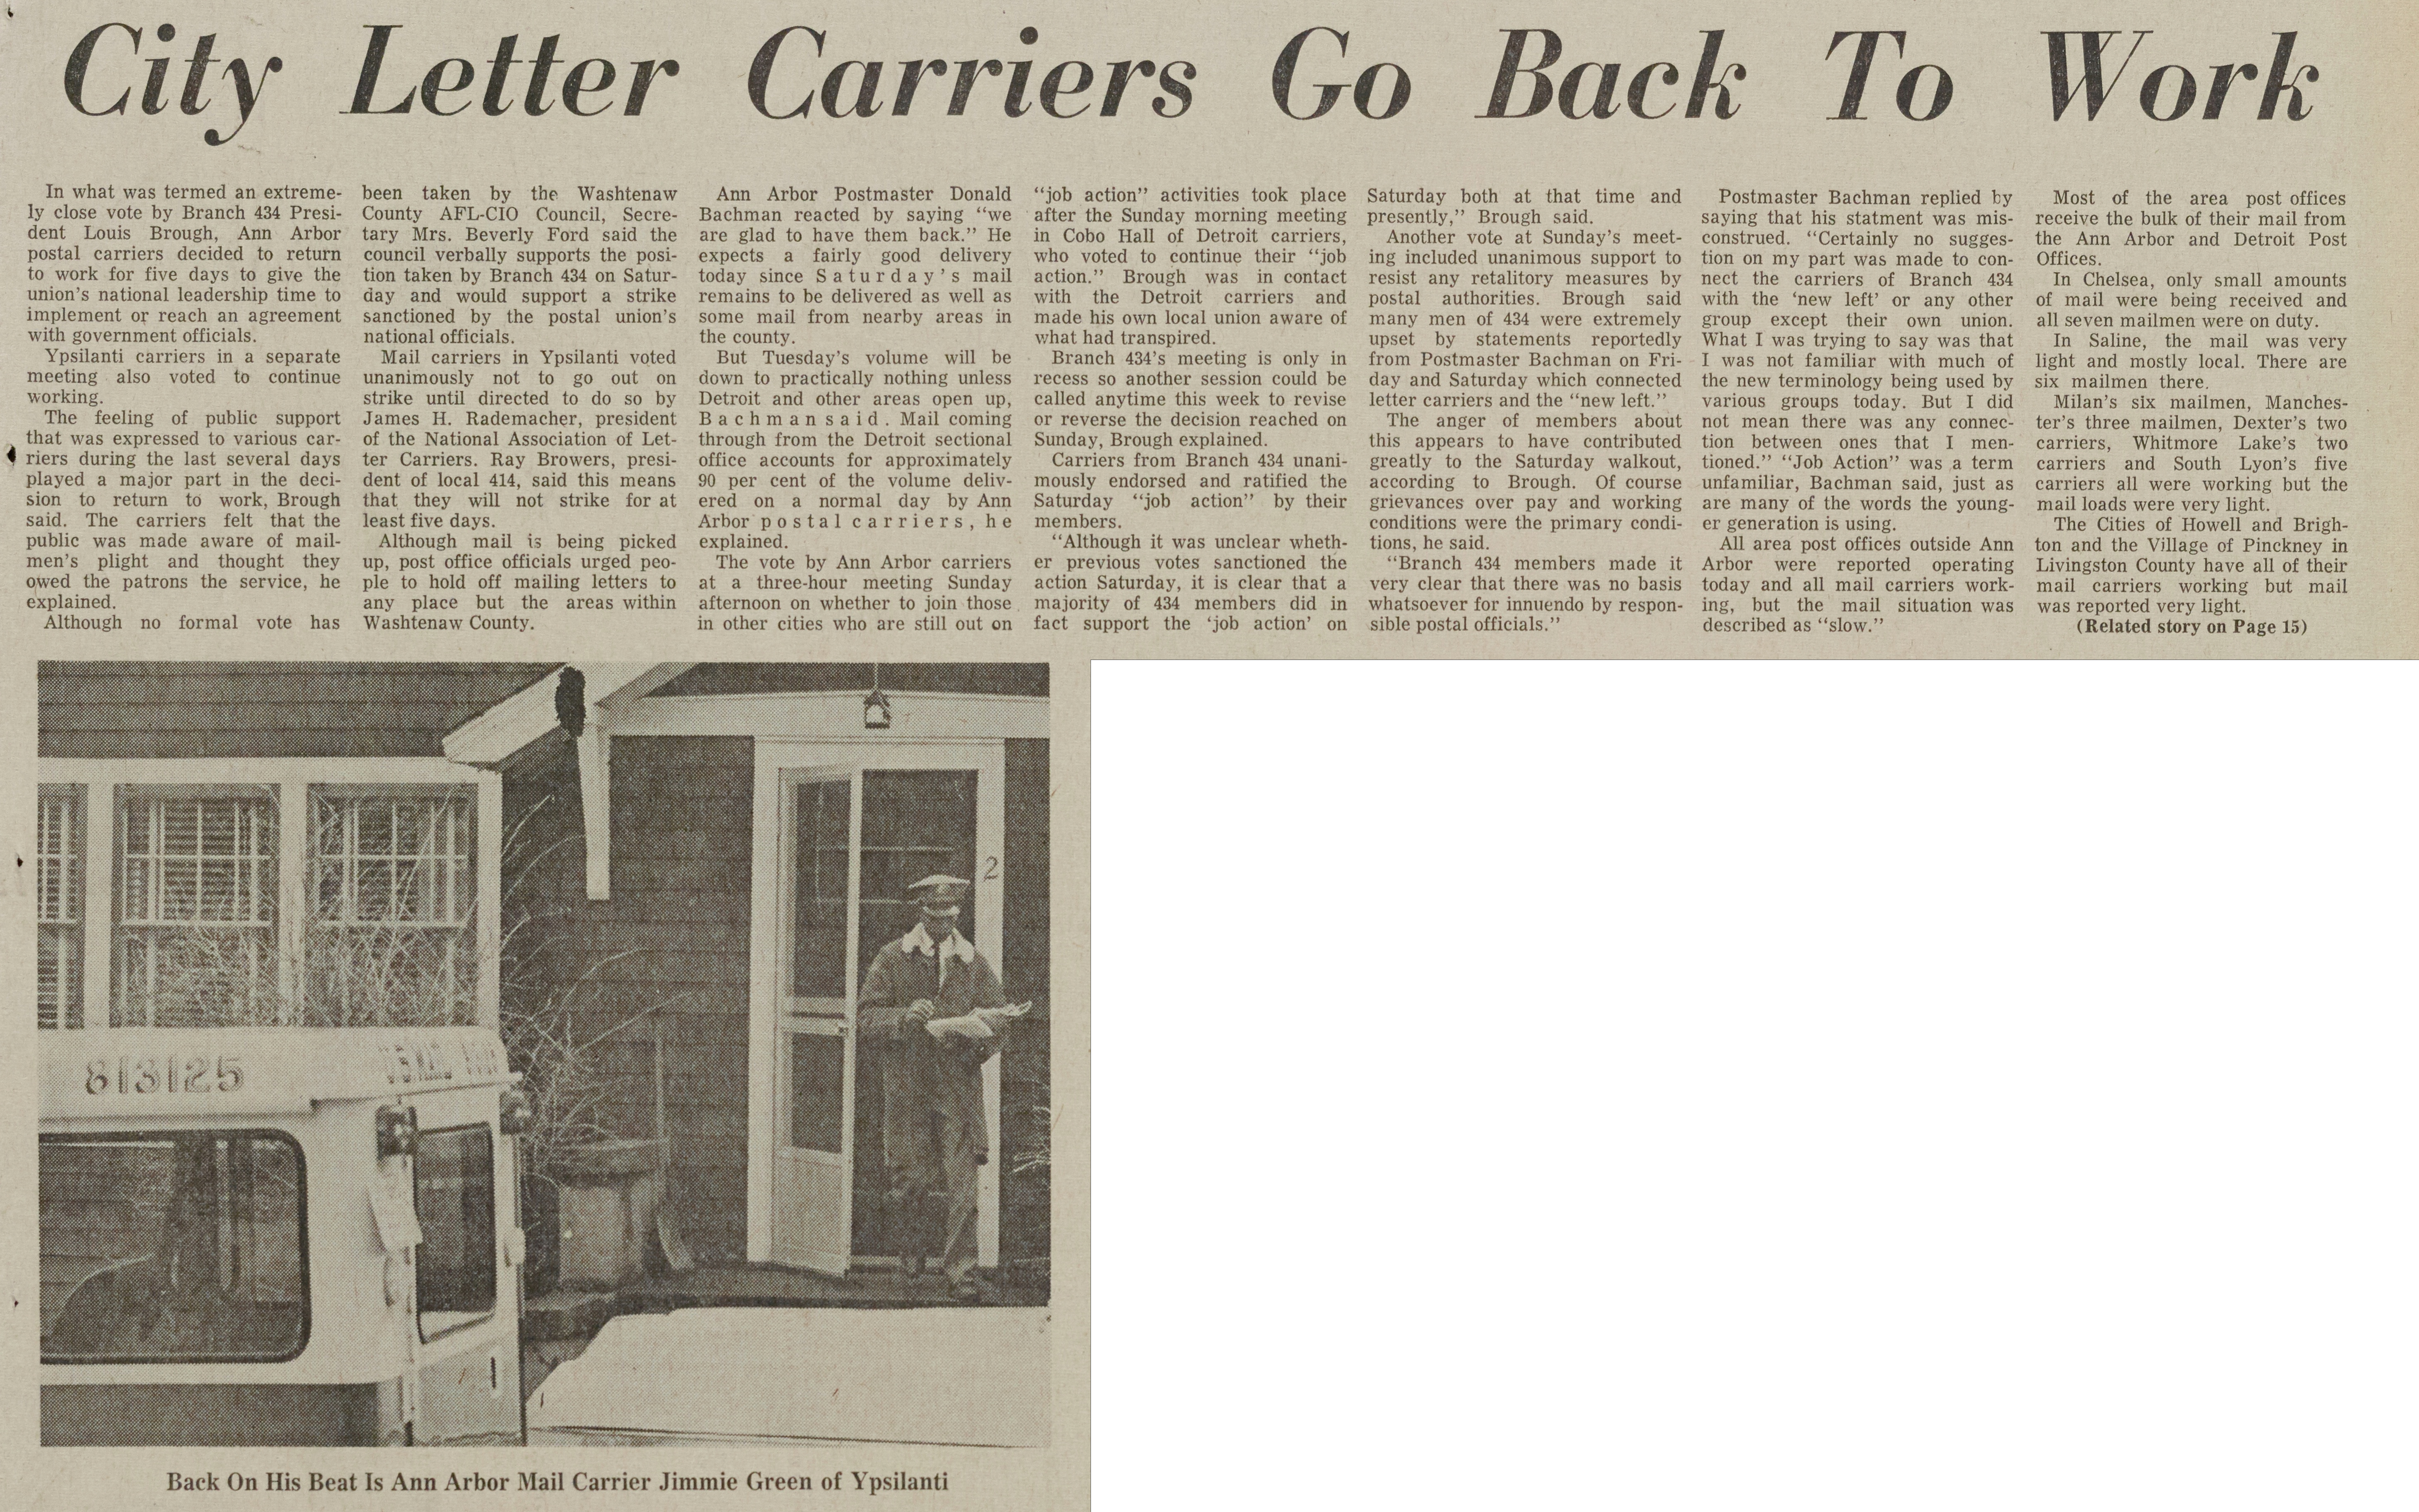 City Letter Carriers Go Back To Work image